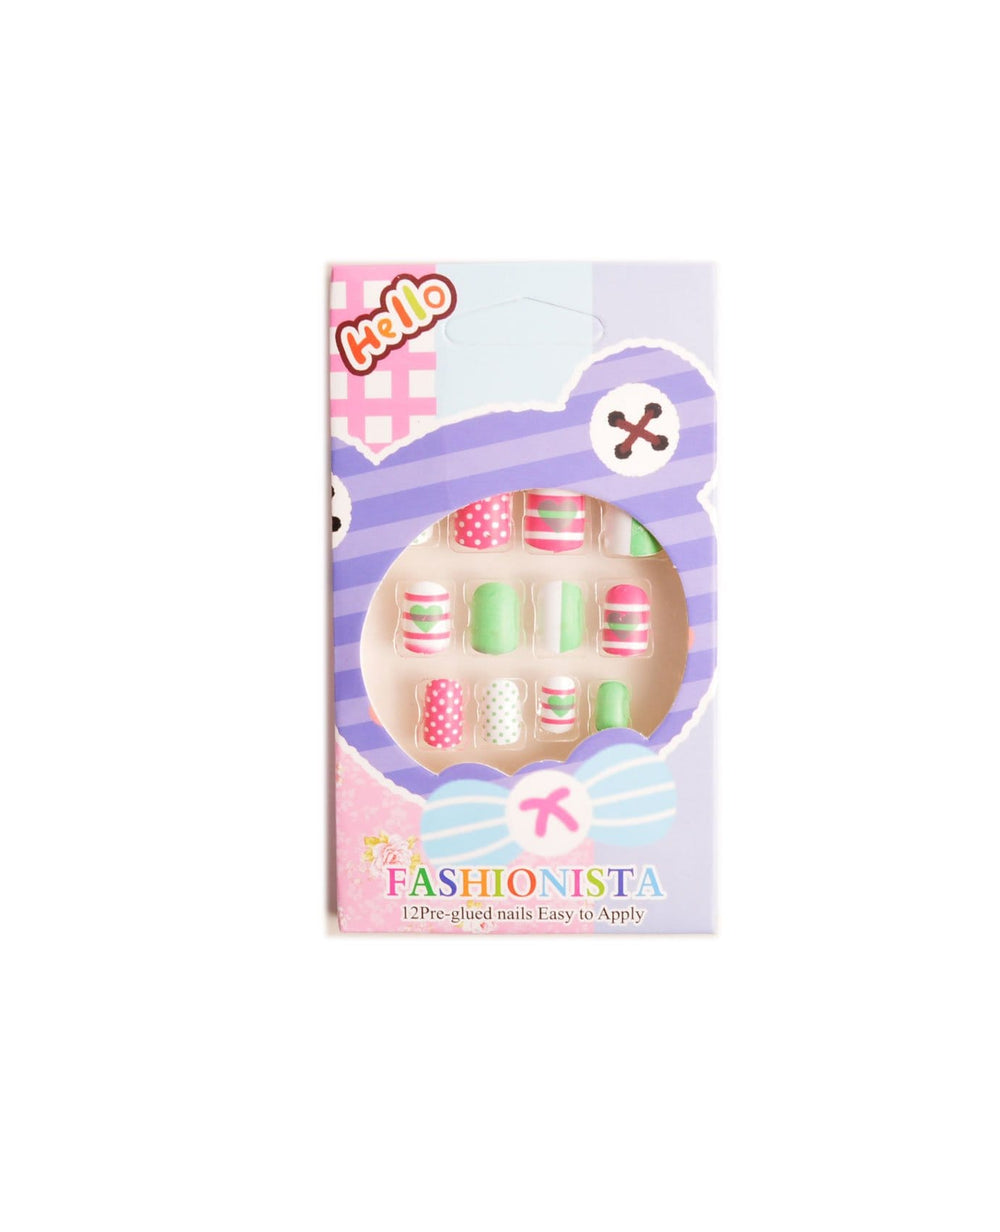 Fashionista Princess Press-On Nails